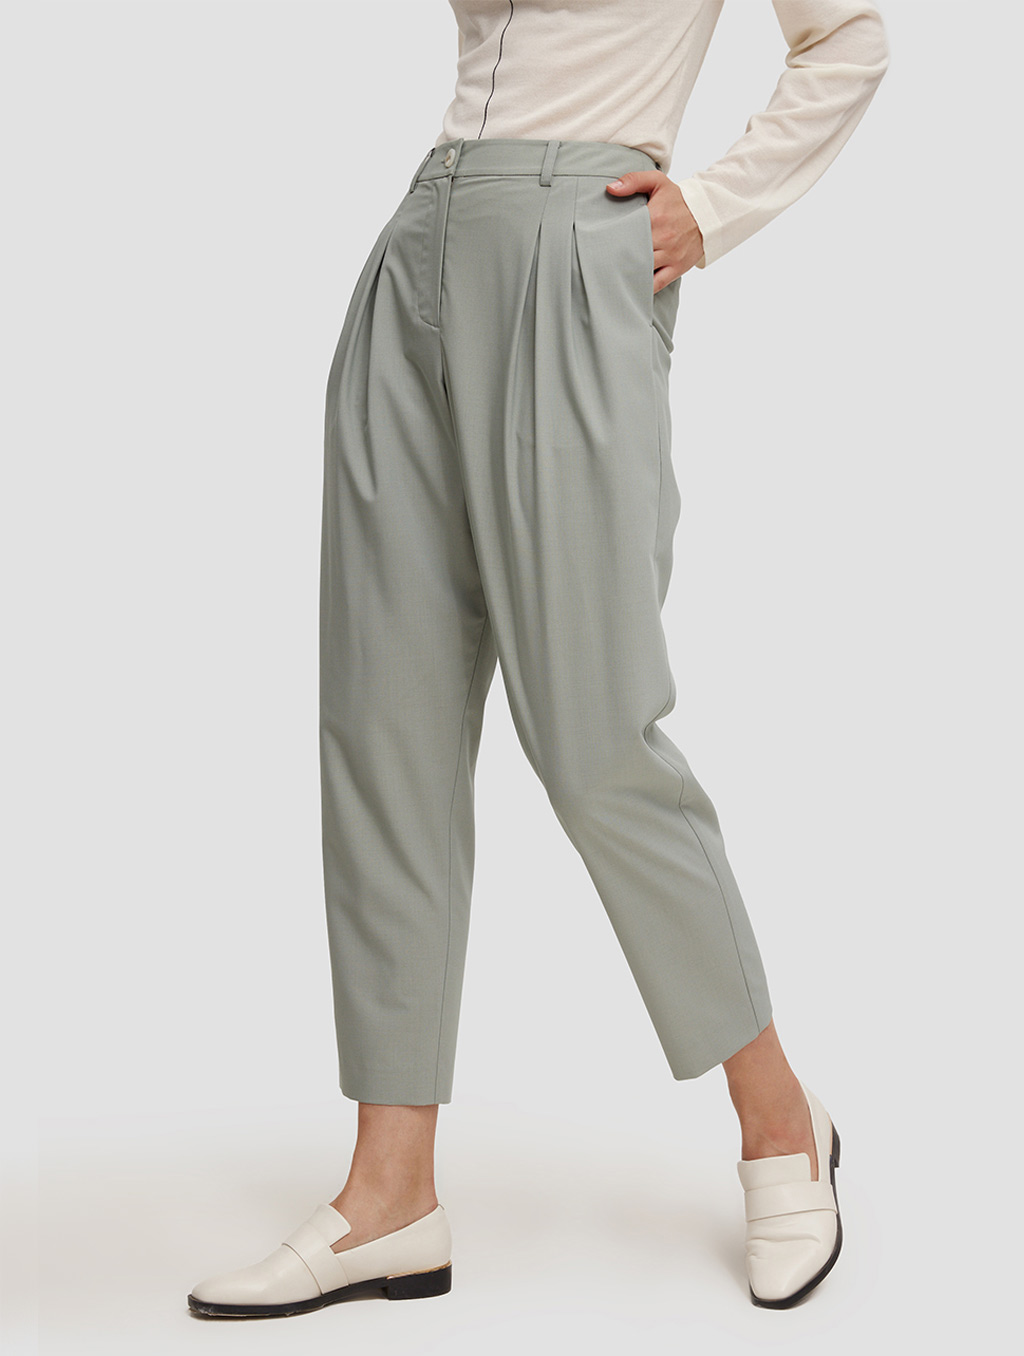 Ankle length Tapered pants-side-pale green